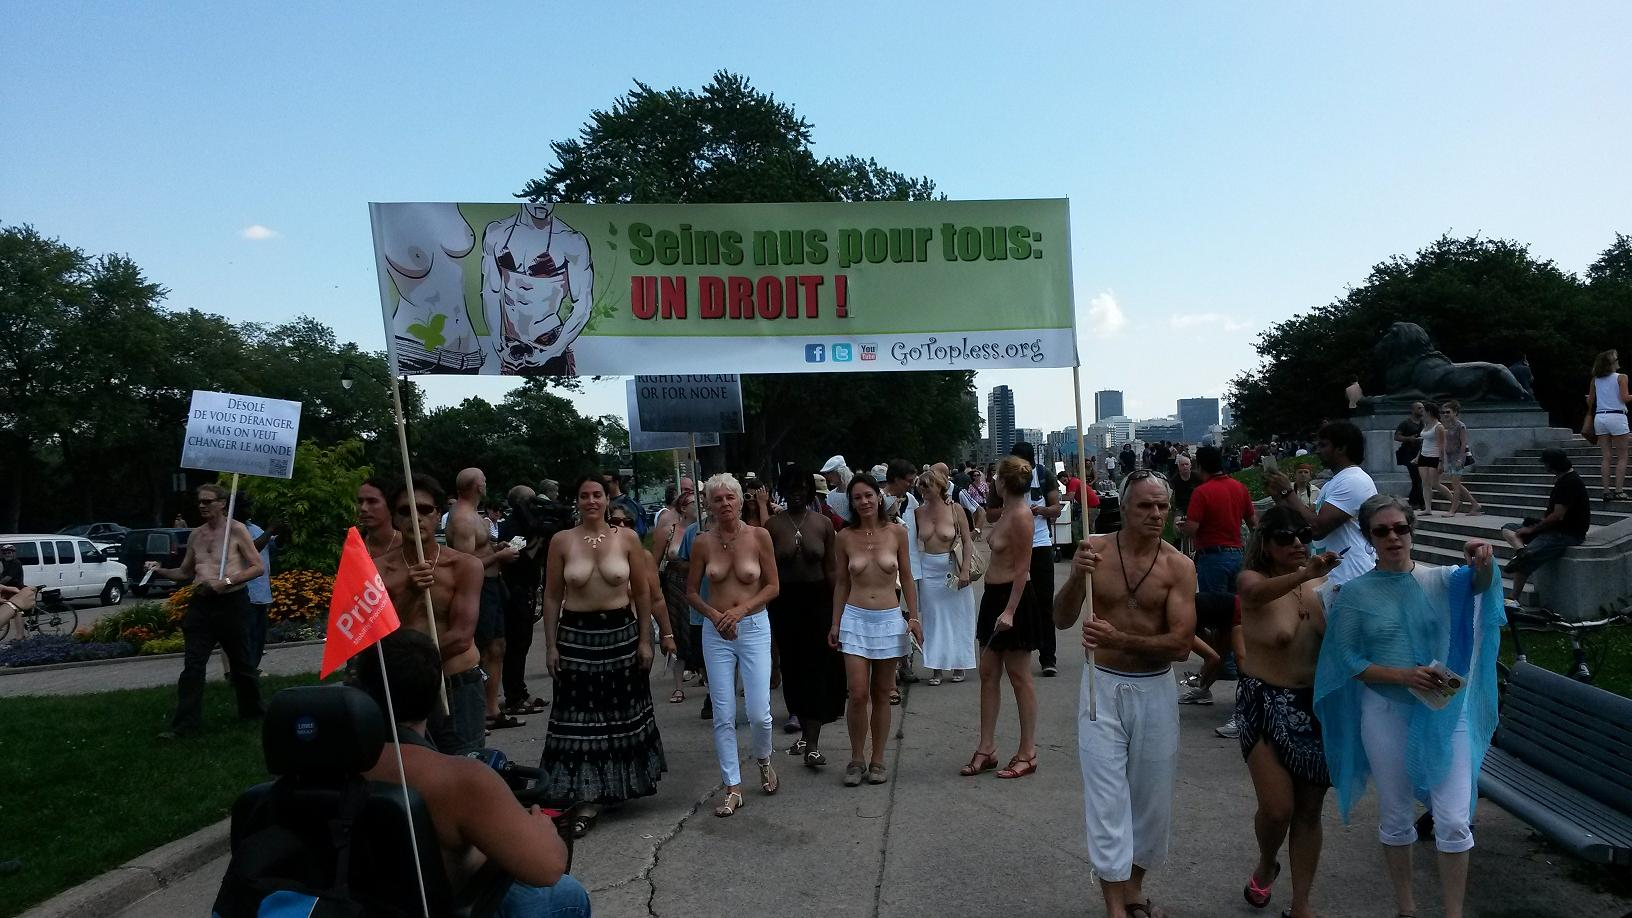 Nudism/Naturism: Double standards within the social nudism community